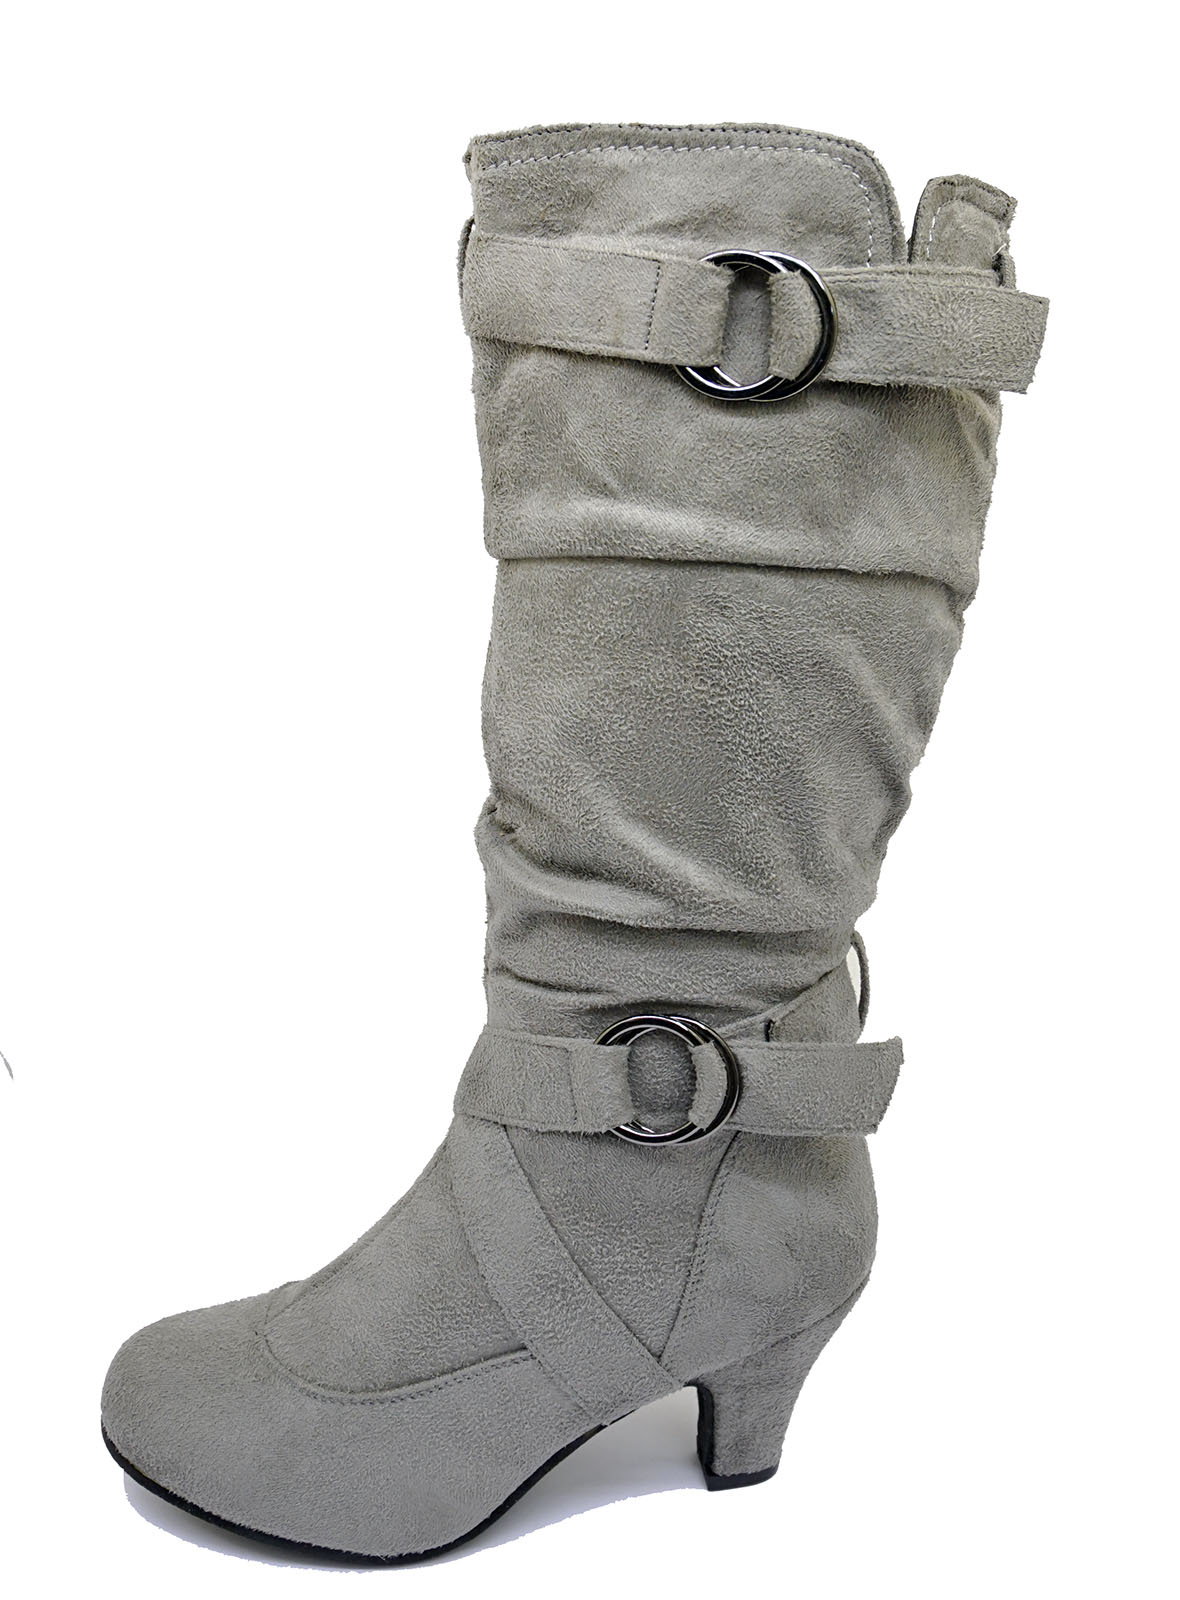 LADIES-GREY-ZIP-UP-BIKER-SLOUCH-RUCHED-TALL-KNEE-CALF-LOW-HEEL-BOOTS-SHOES-4-10 thumbnail 21